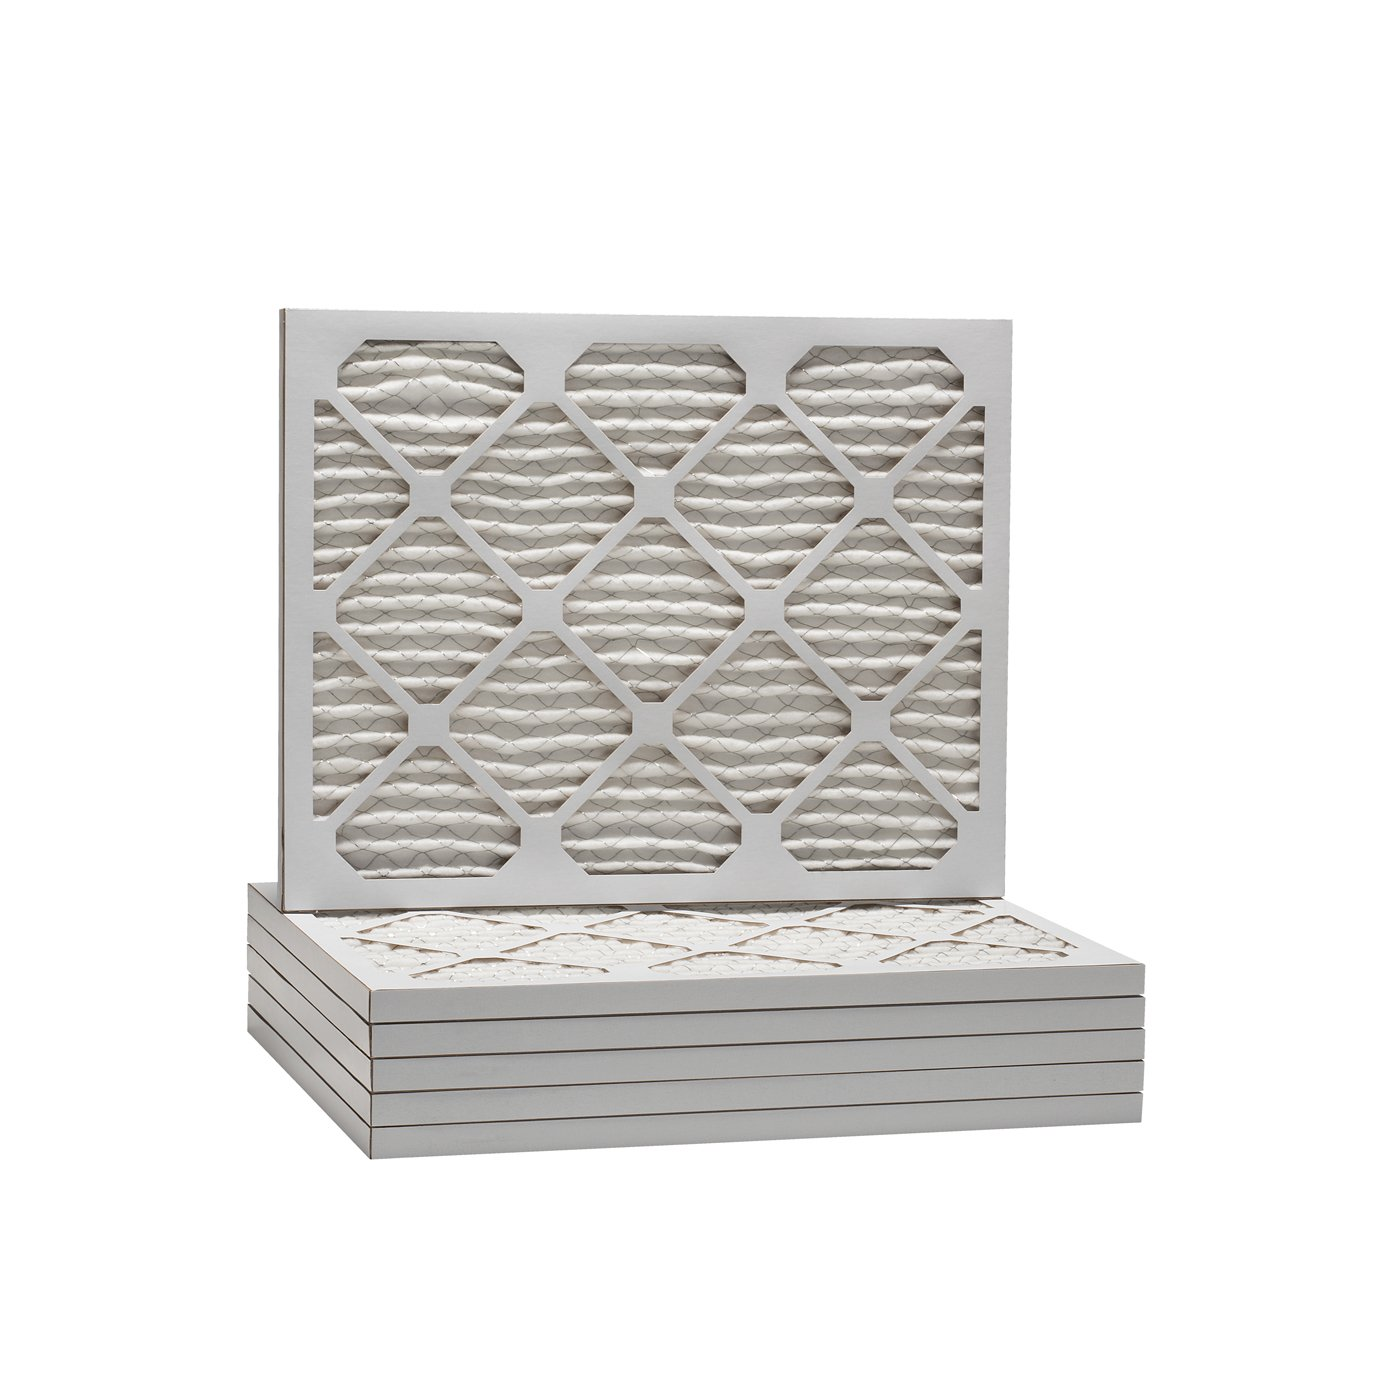 Tier1 14x16x1 Merv 13 Ultimate Air Filter//Furnace Filter 6 Pack